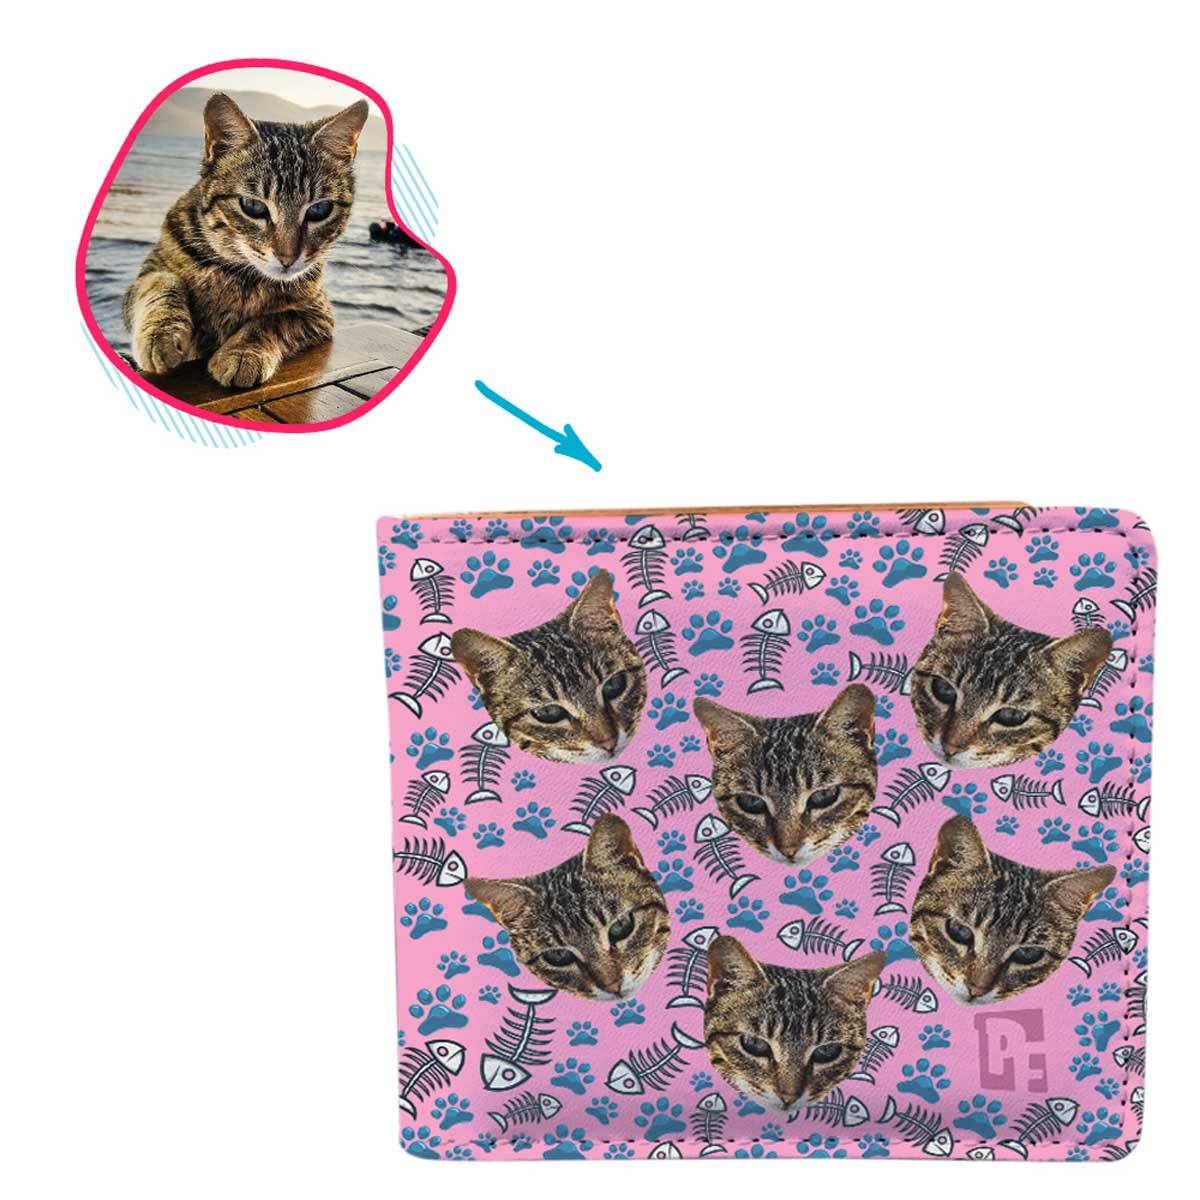 pink Cat wallet personalized with photo of face printed on it